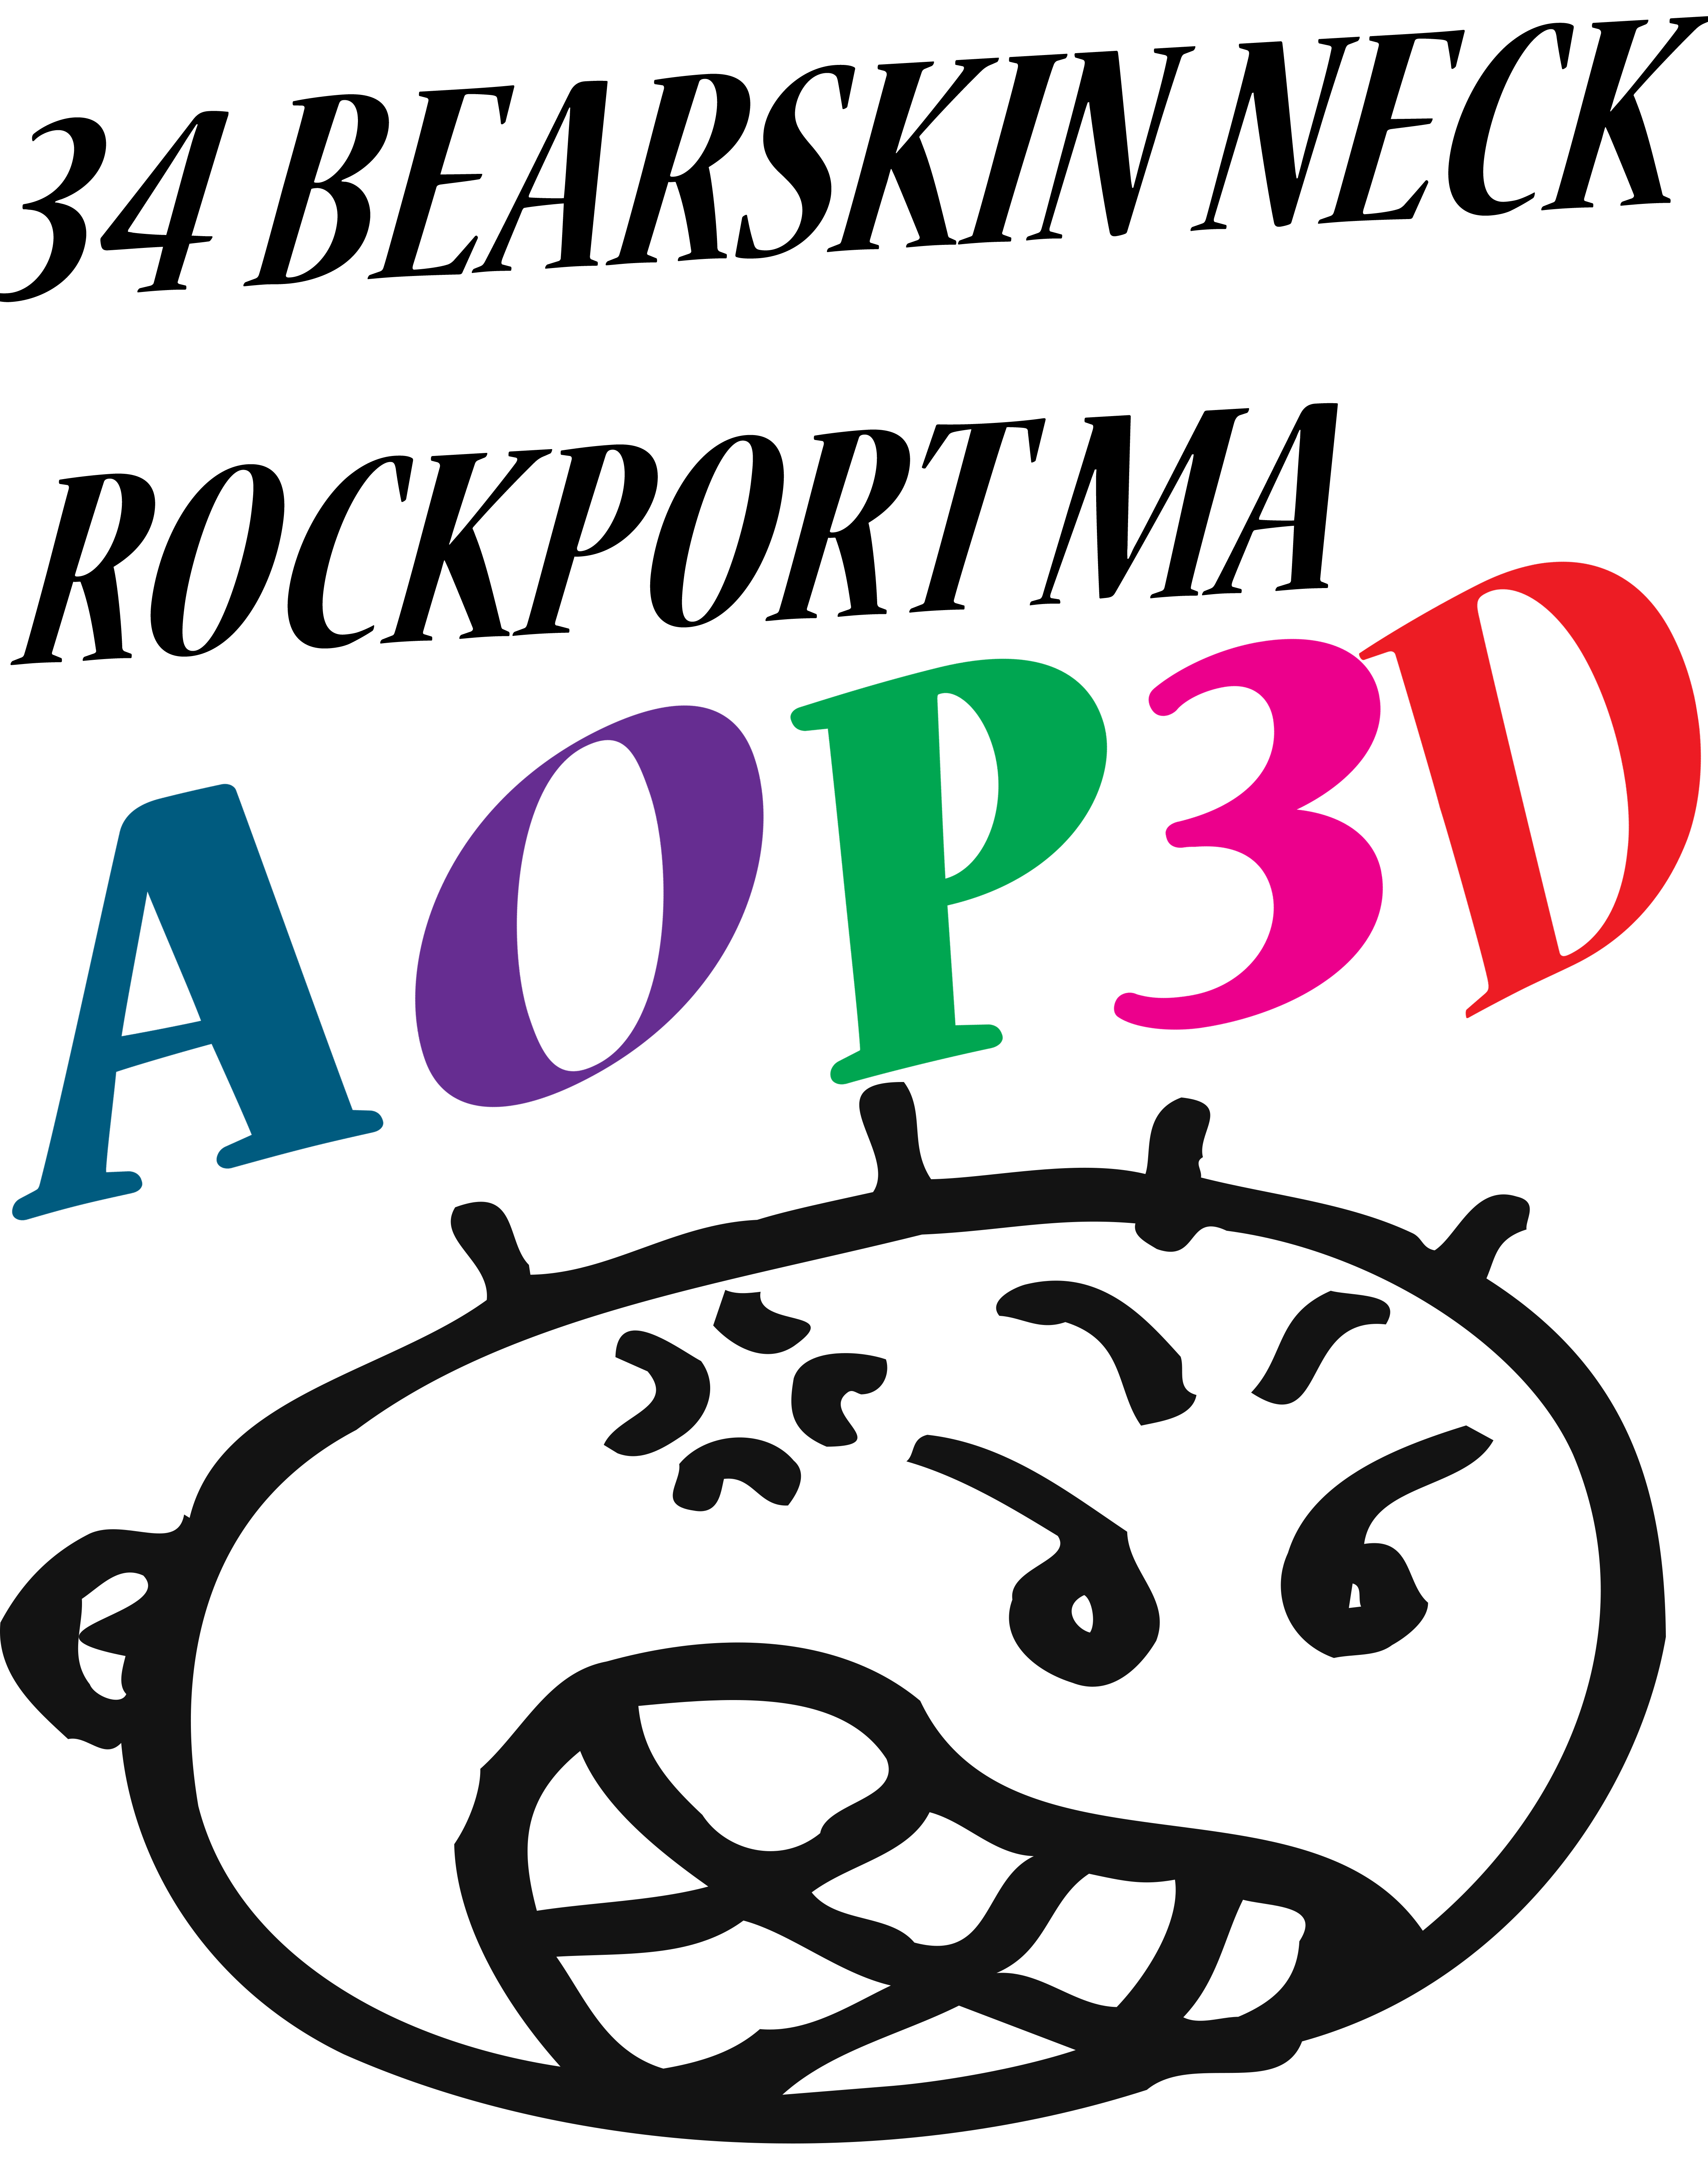 Aop3d located at 34 bearskin neck